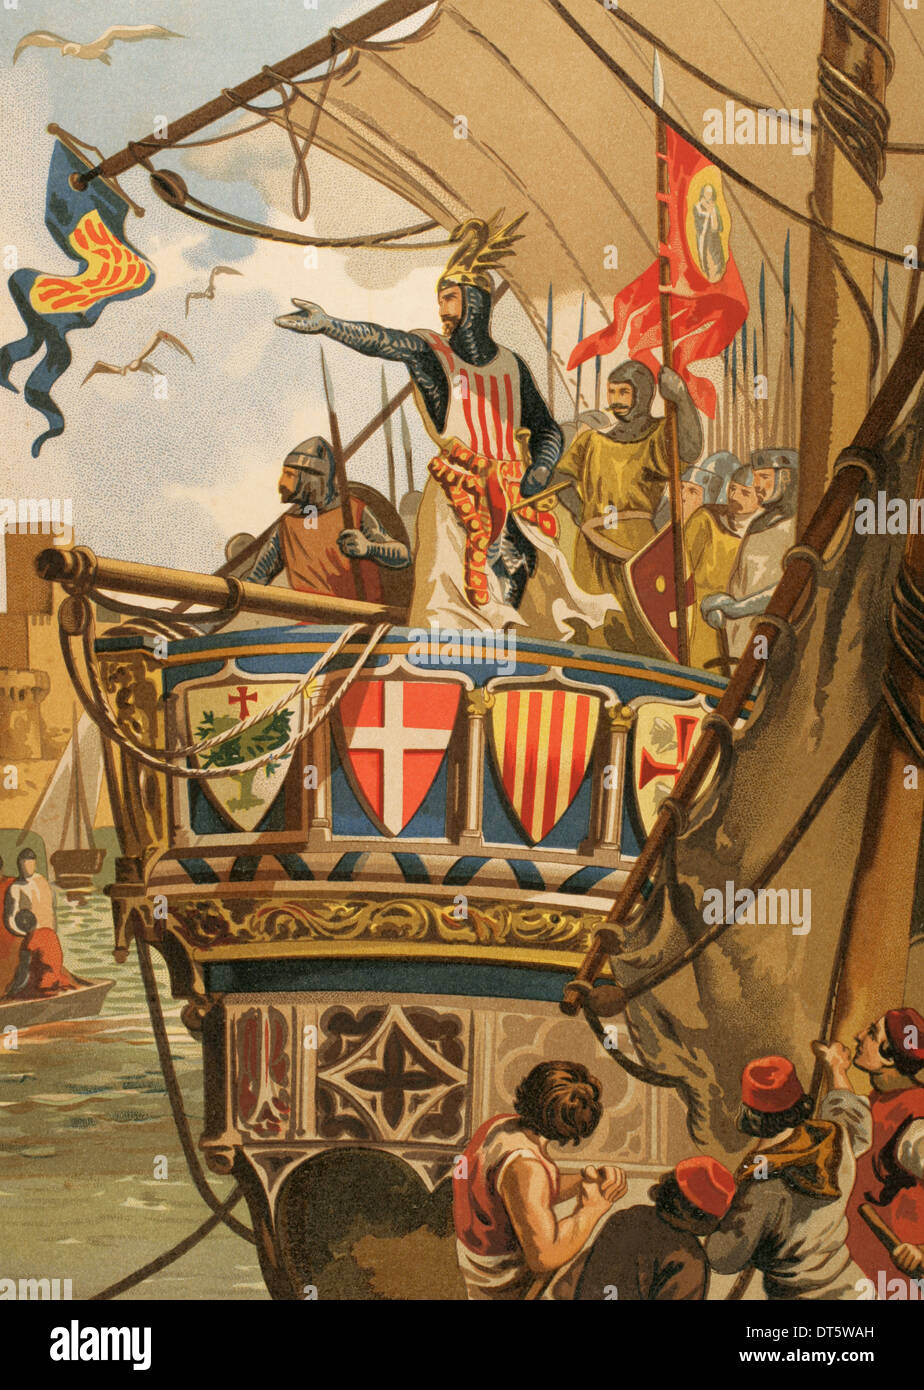 James I The Conqueror (1208-1276). Expedition to Majorca. Colored engraving. - Stock Image